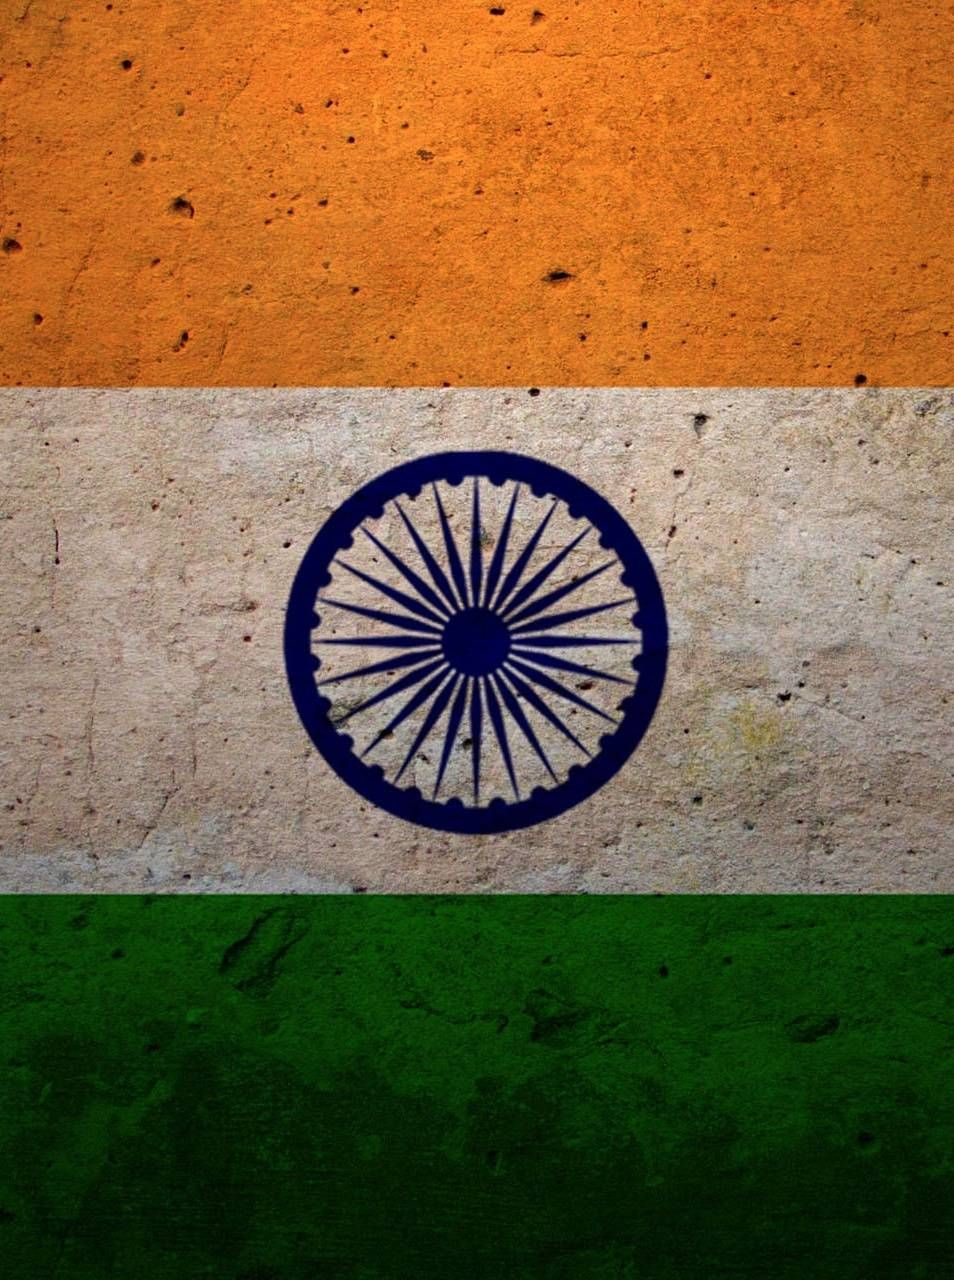 Download Flag Of India Wallpaper By Midnight King 5d Free On Zedge Now Browse Millions Of Popular Bharat Army Wallpaper Wallpaper Indian Army Wallpapers